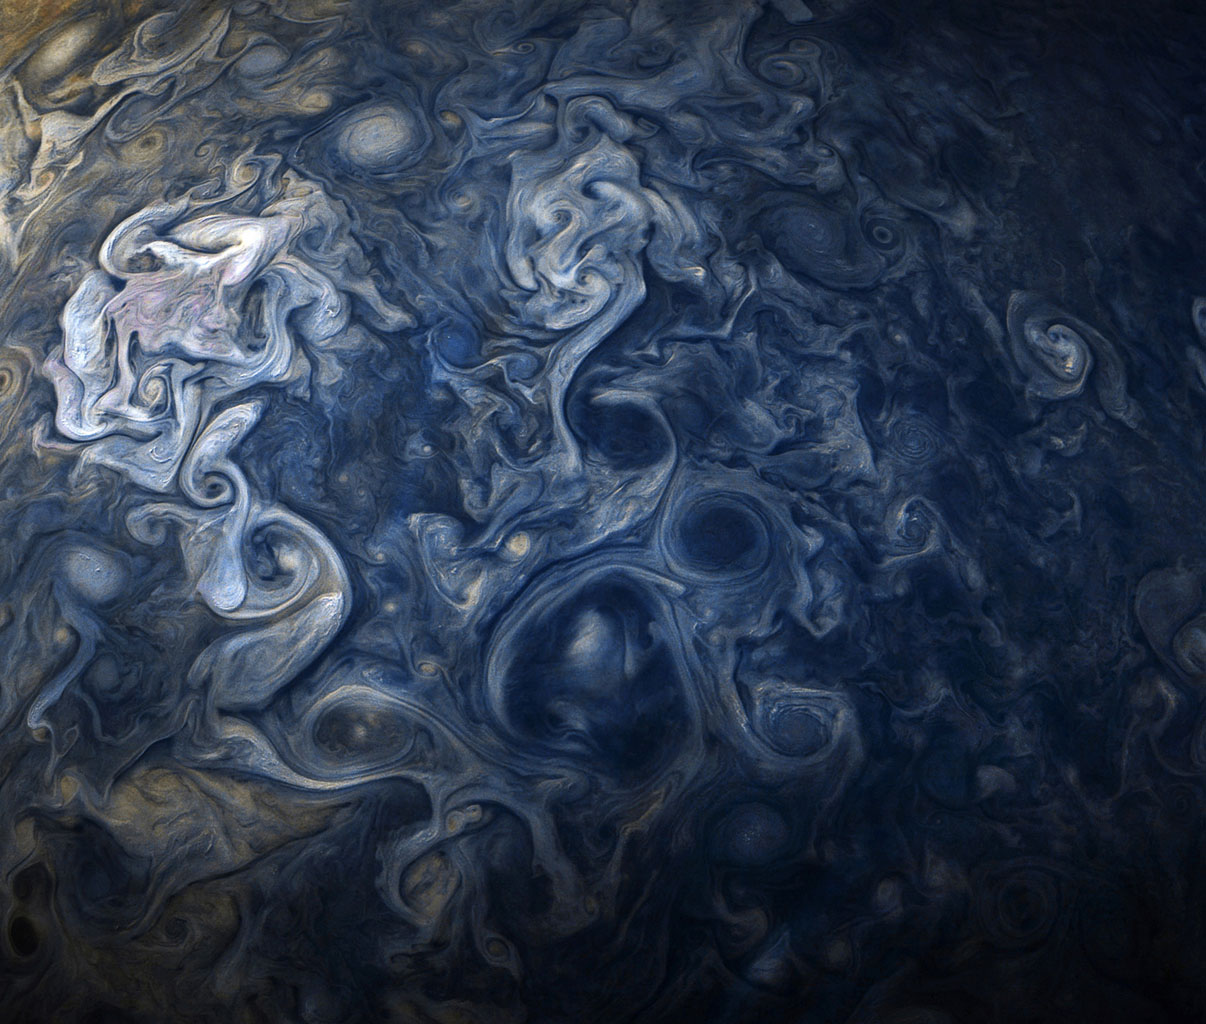 swirling cloud patterns